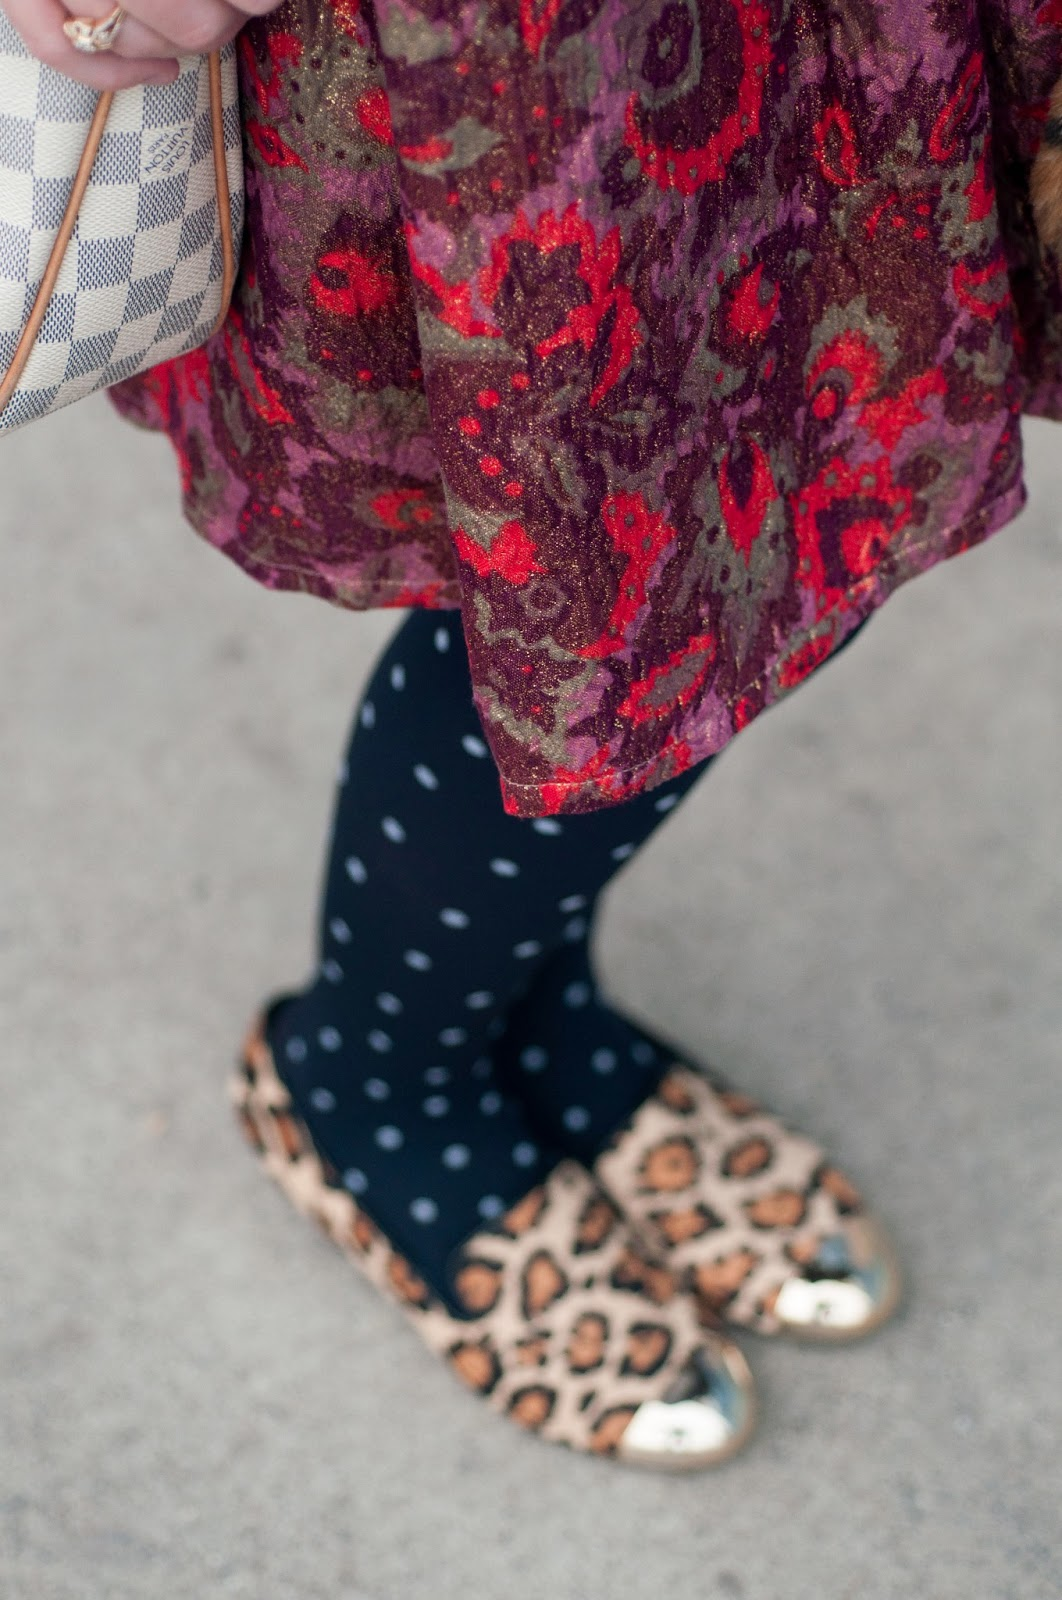 fashion blog, style blog, men's fashion blog, style blog, anthropologie ootd blog, anthropologie ootd, anthropologie, steve madden, cheetah, loafers, gold tipped shoes, polka-dot tights